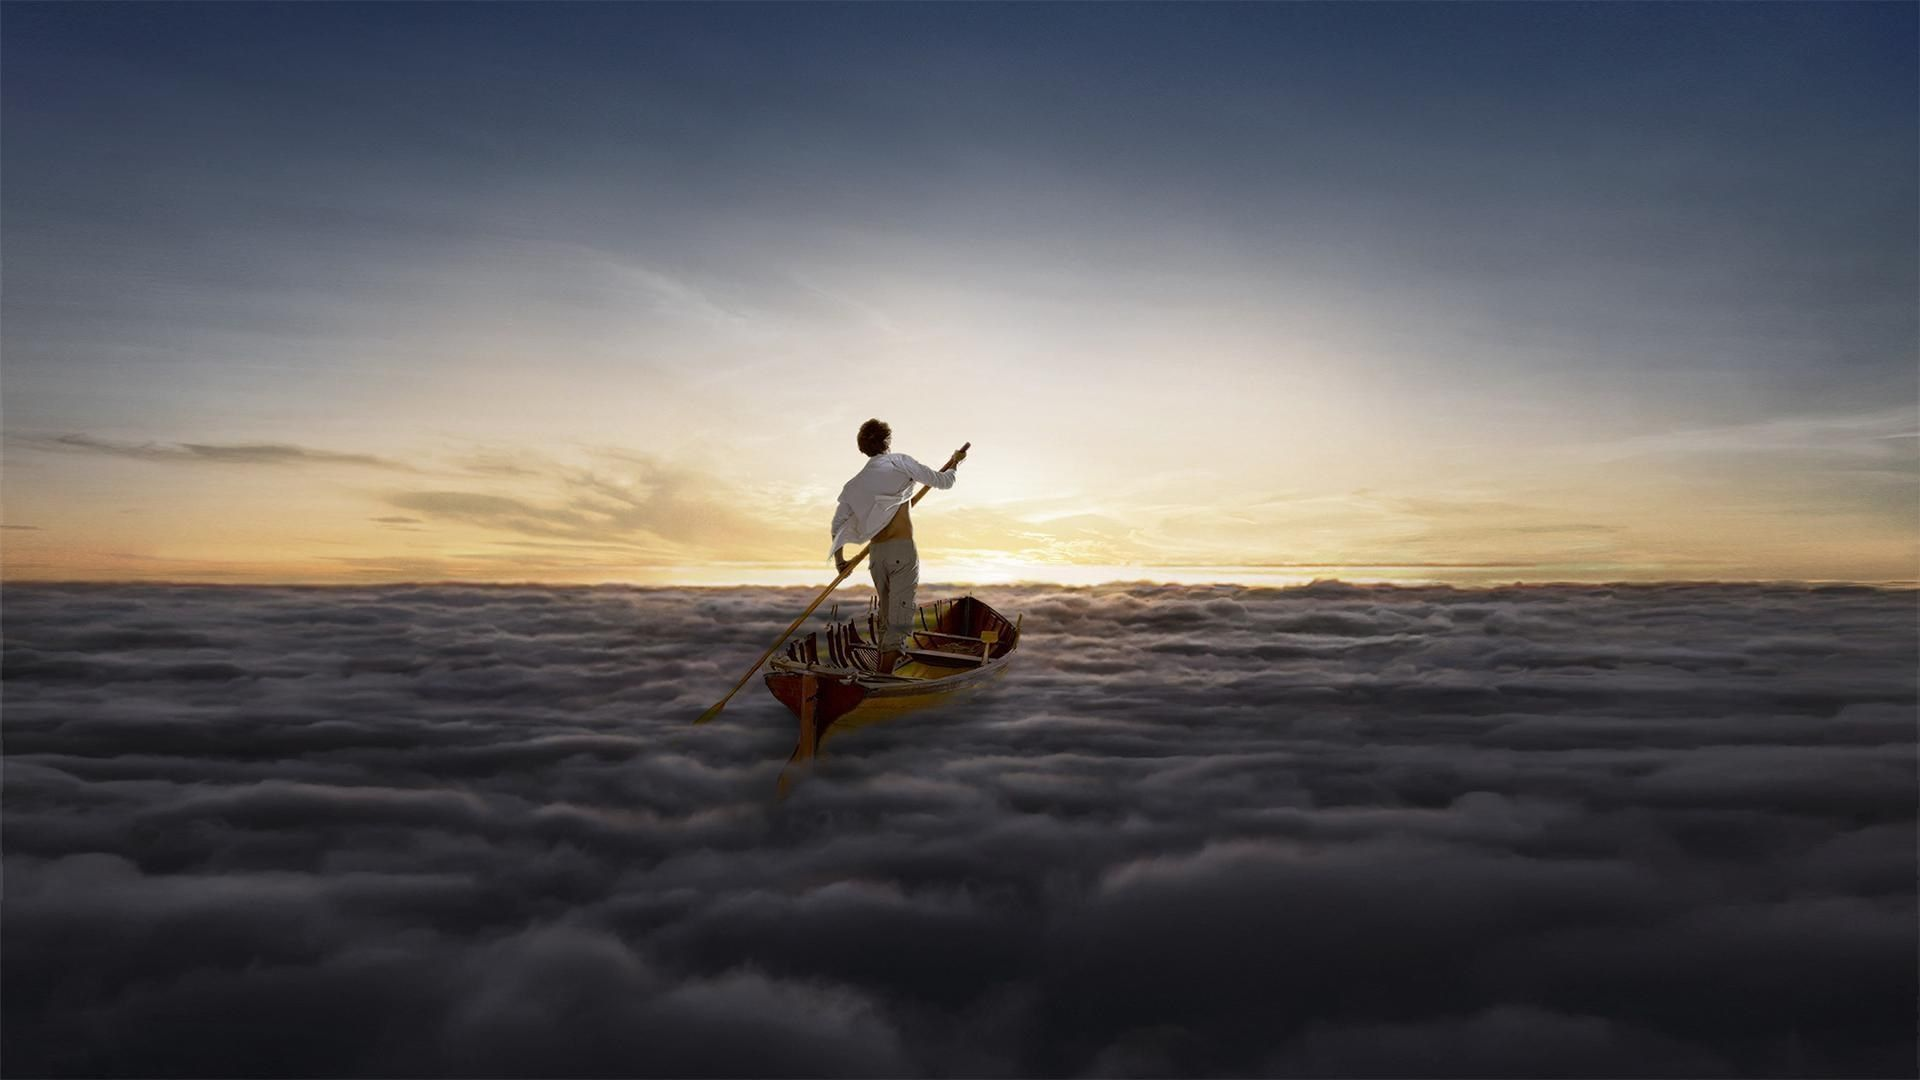 Pink Floyd Desktop Wallpaper Hd Pics The Endless River Pink Floyd Wallpaper Pink Floyd